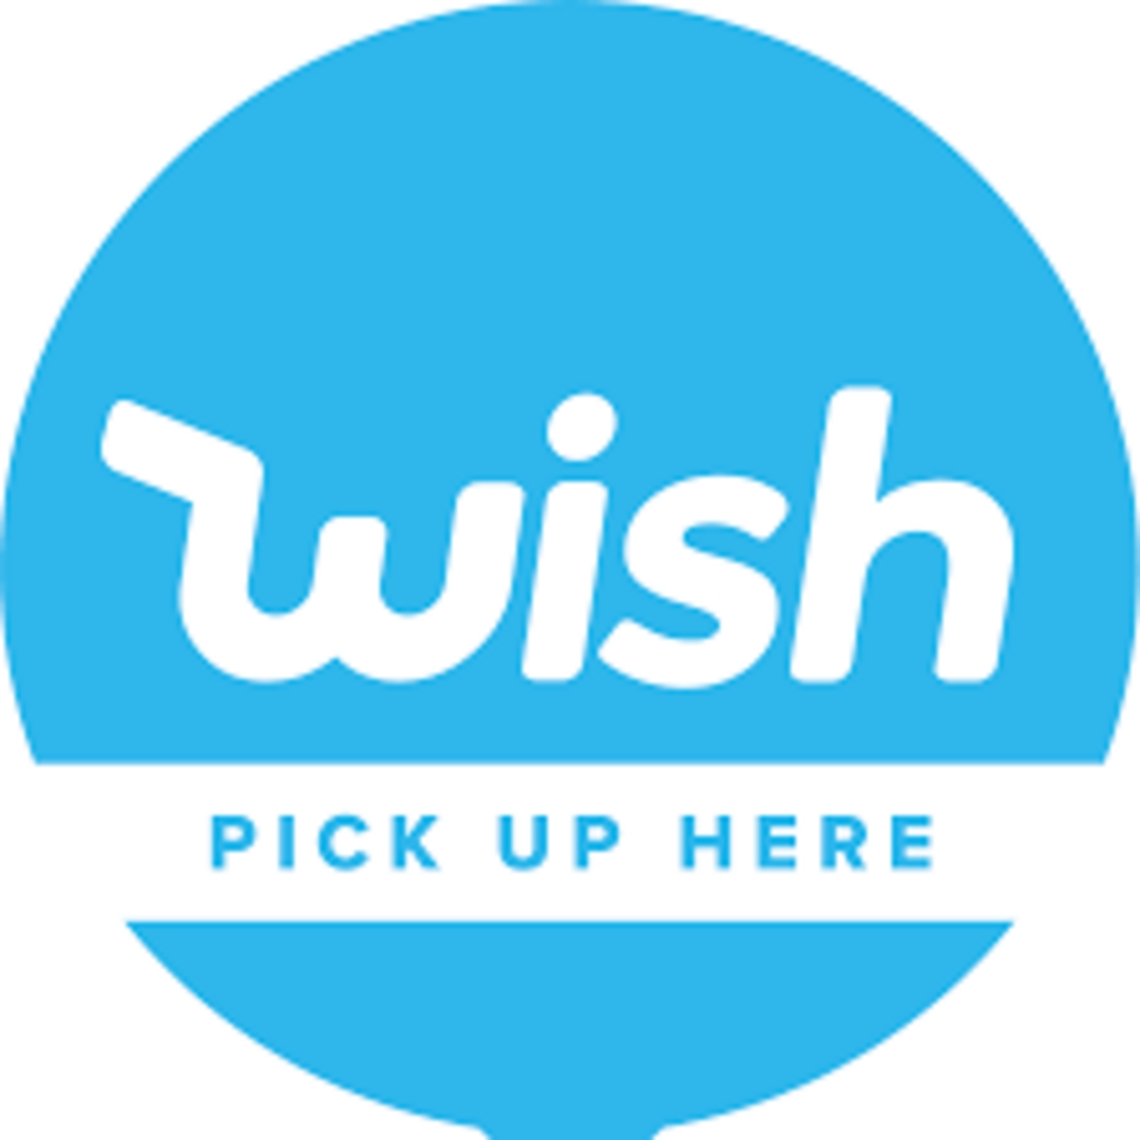 ACQUISTA SU WISH E RITIRA DA NOI